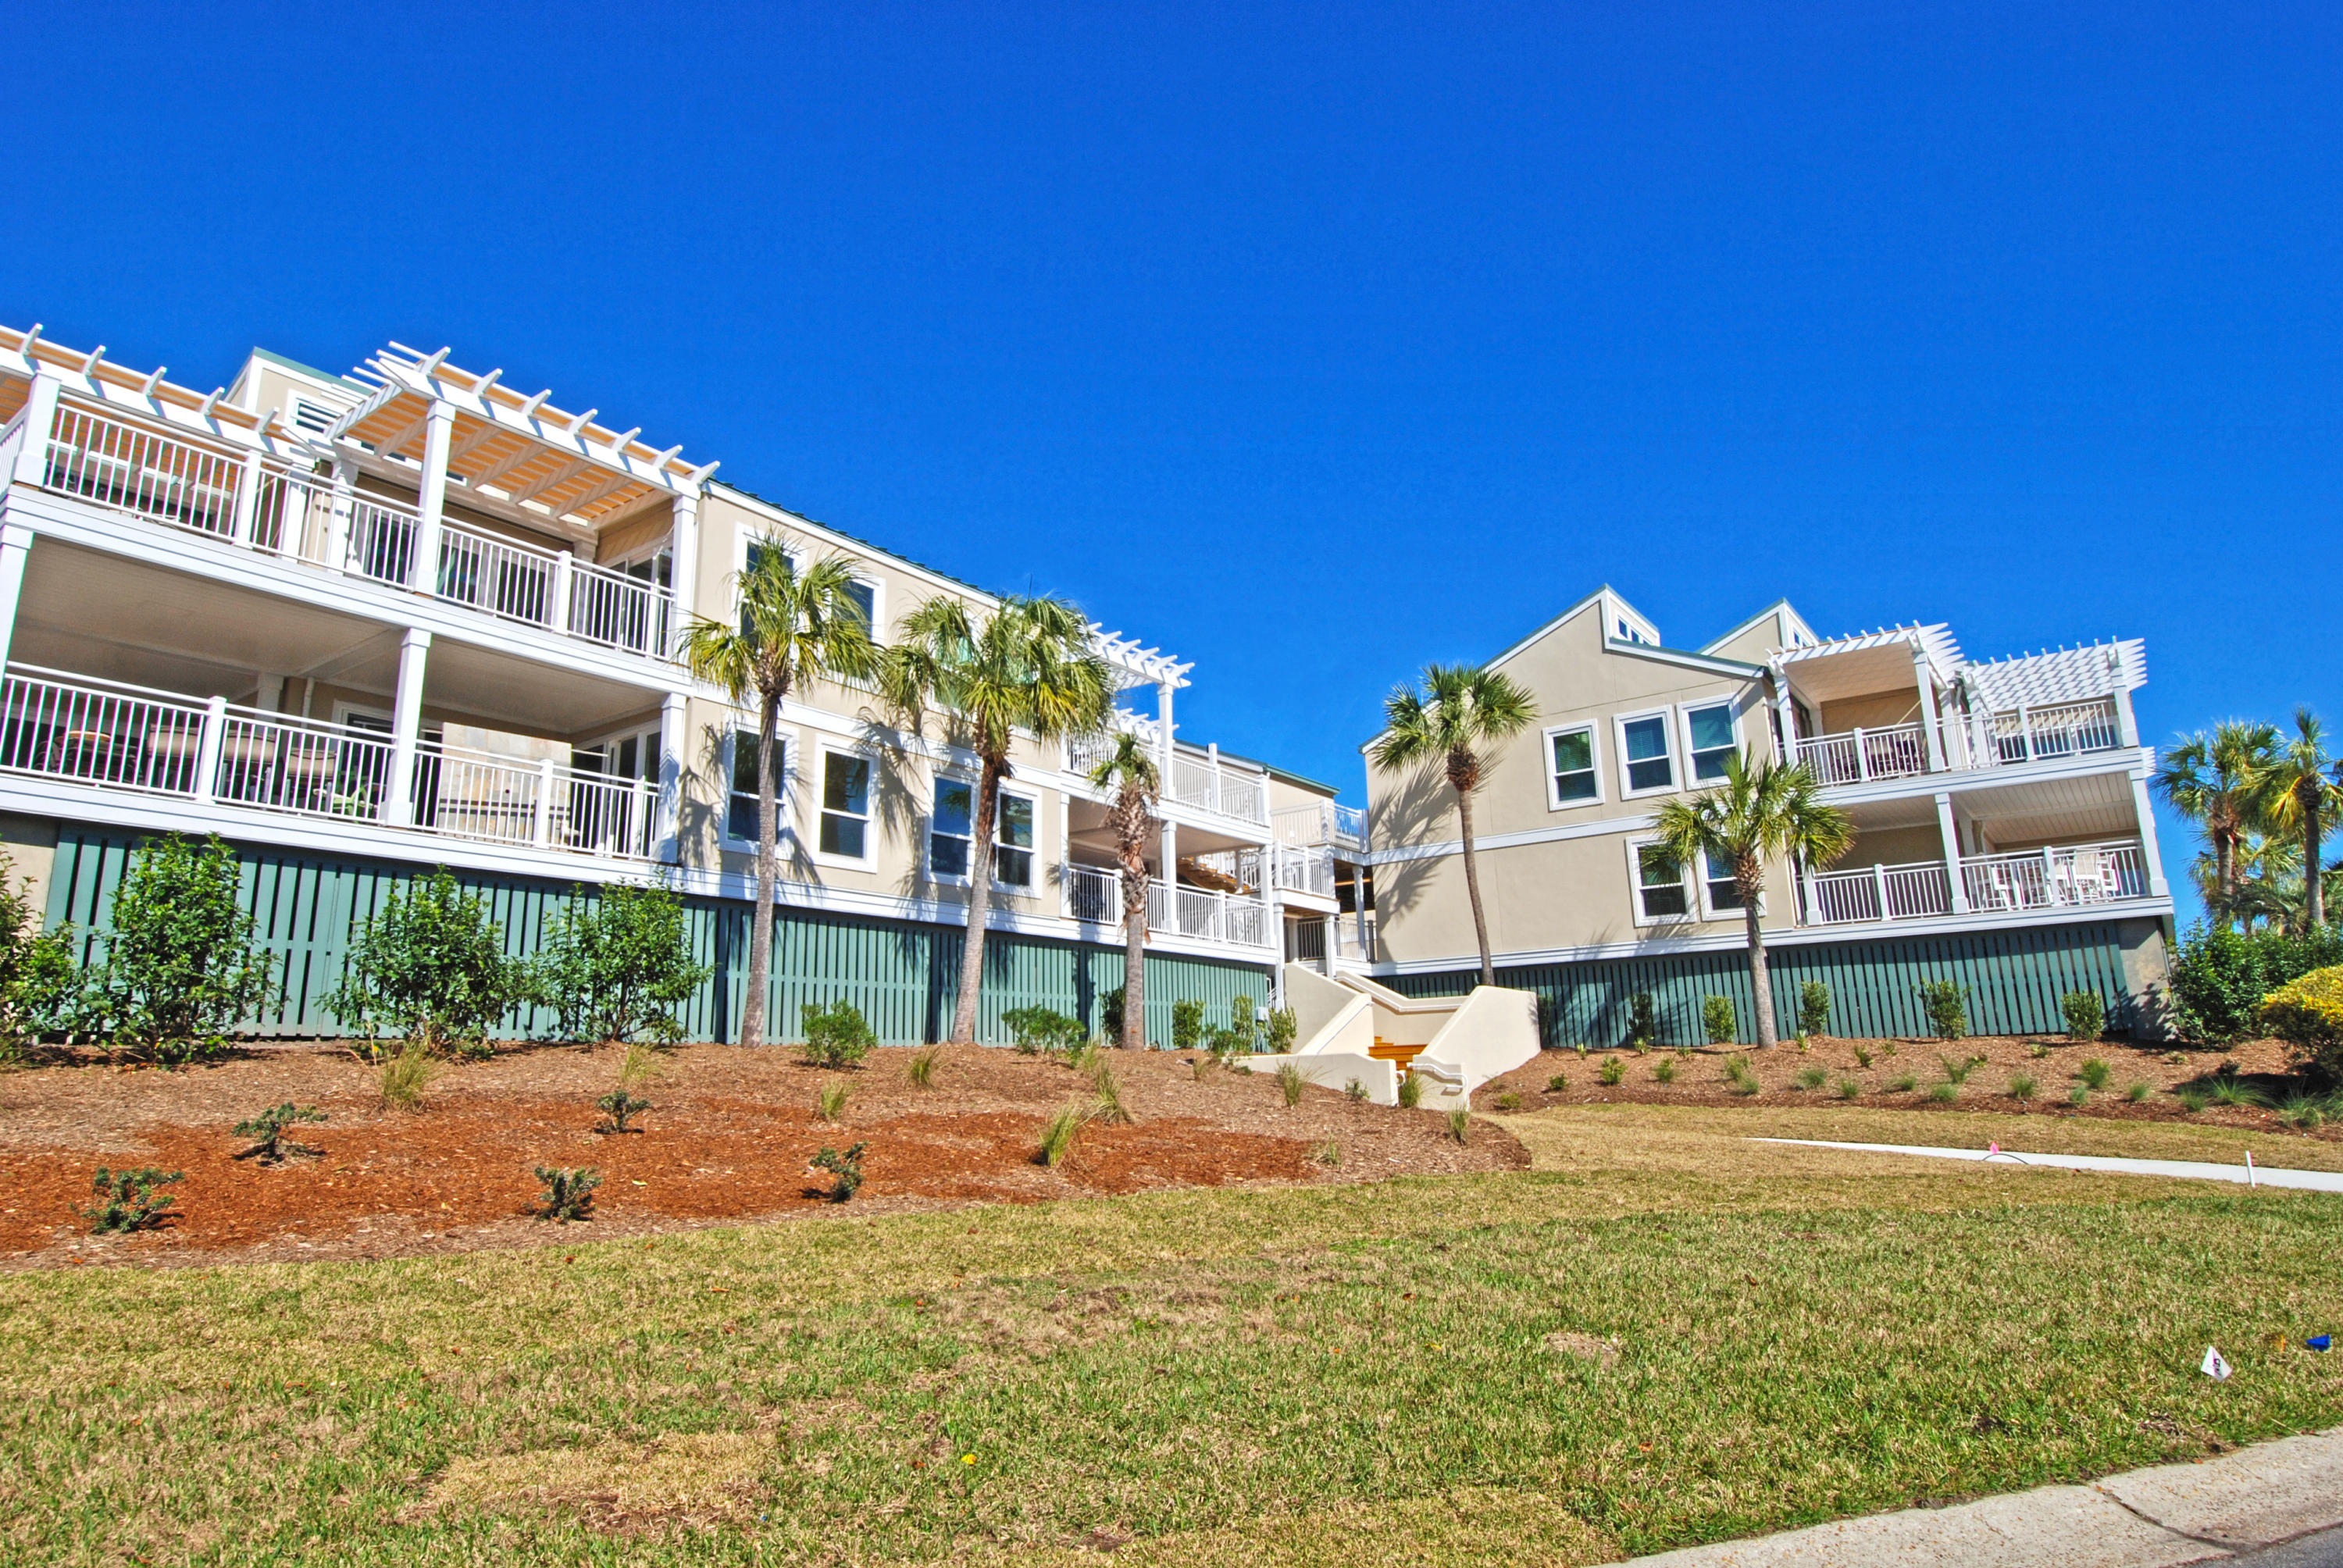 Atrium Villas Homes For Sale - 2943 Atrium Villa, Seabrook Island, SC - 0